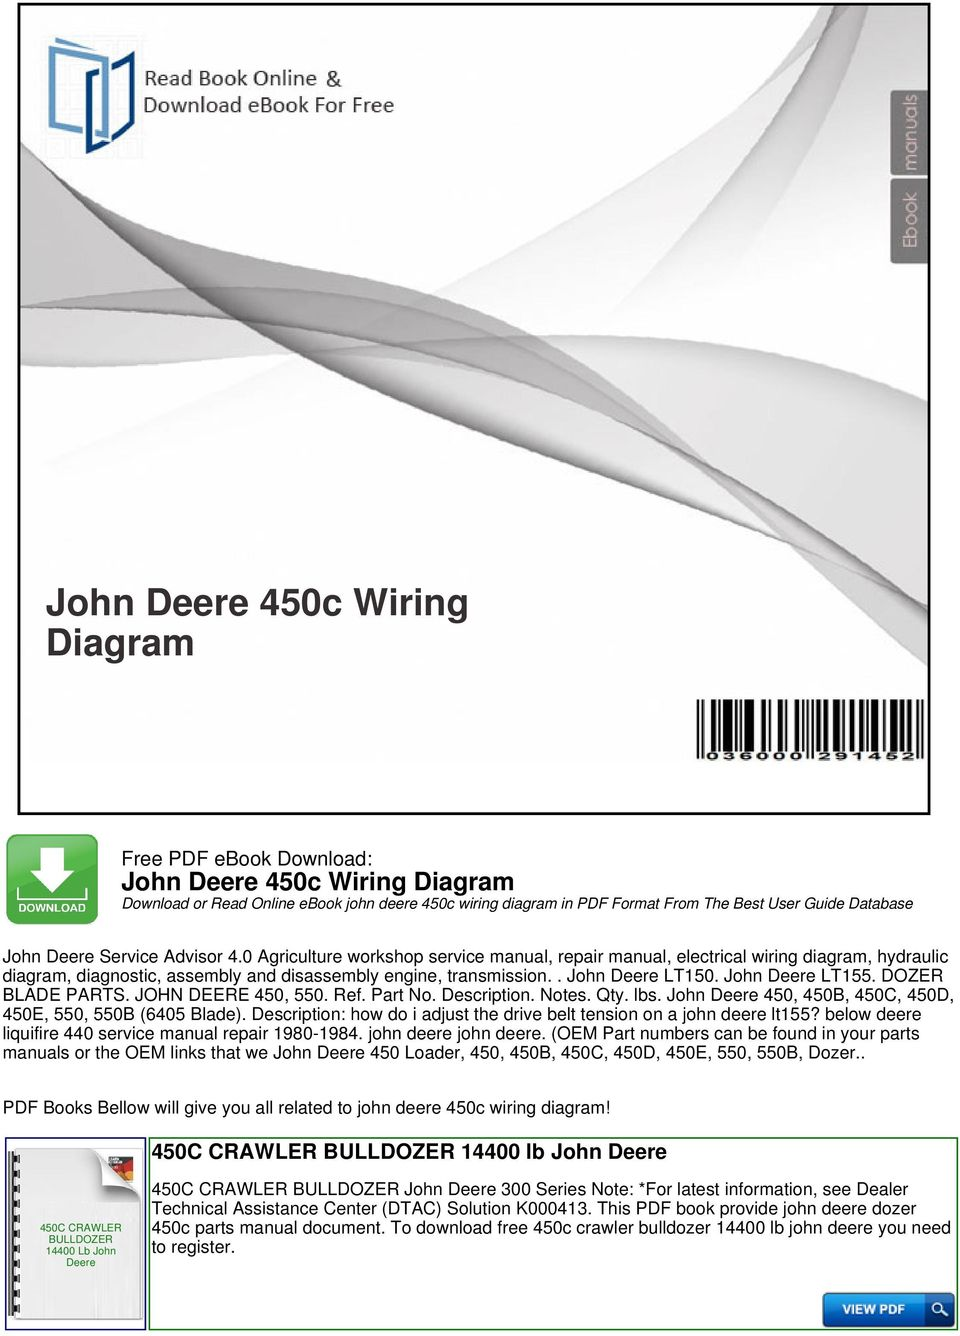 John Deere 450c Wiring Diagram Pdf A Cooker Switch With Socket Free Download Diagrams Dozer Blade Parts 450 550 Ref Part No Description